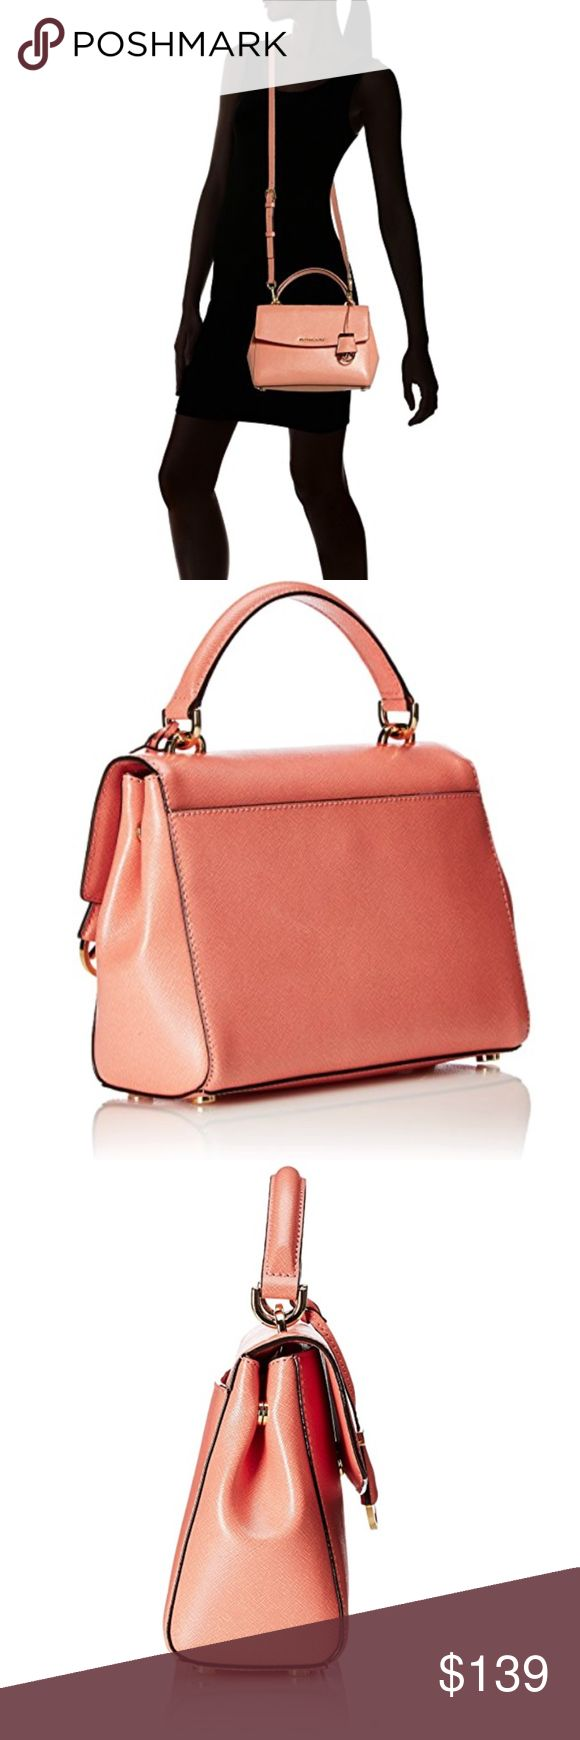 "Michael Kors Ava Small Top Handle Satchel Peach Saffiano leather with gold-tone hardware Small sized bag; 9-3/4"" W x 7-1/2"" H x 4"" D 4""L double handles; 19""L adjustable shoulder strap Magnetic closure; rear exterior snap pocket Interior features 1 zip pocket, 3 slip pockets, 1 cellphone pocket and key fob Michael Kors Bags Crossbody Bags"